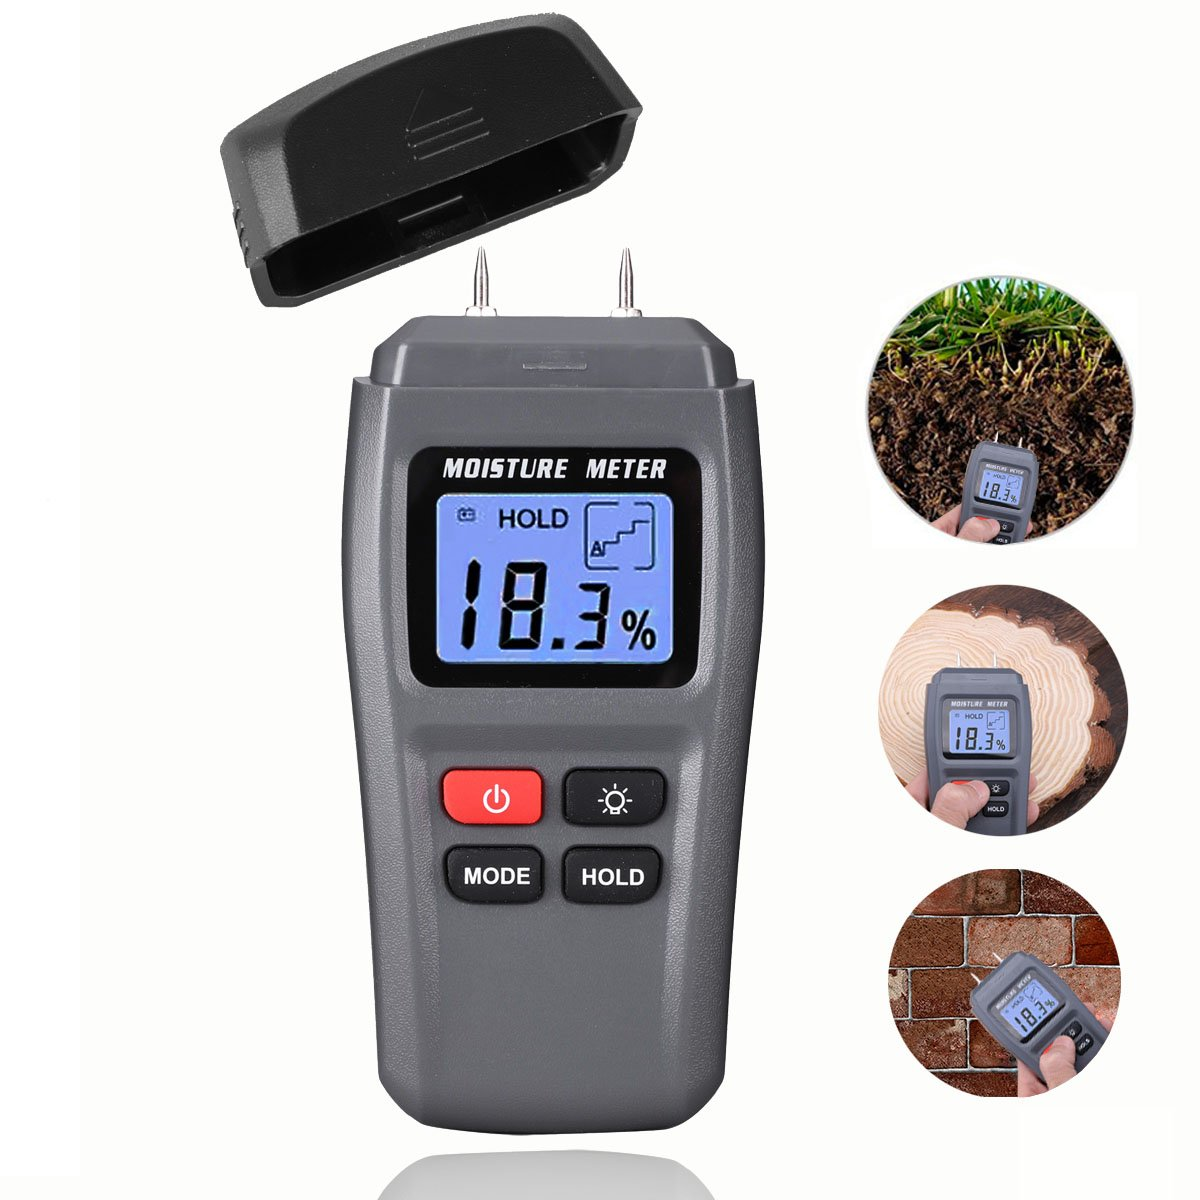 Wood Moisture Meter, DiKaou Wood Humidity Tester Detector with Digital LCD Display, Firewood Humidity Measuring Device, Timber Hygrometer of High Measuring Accuracy